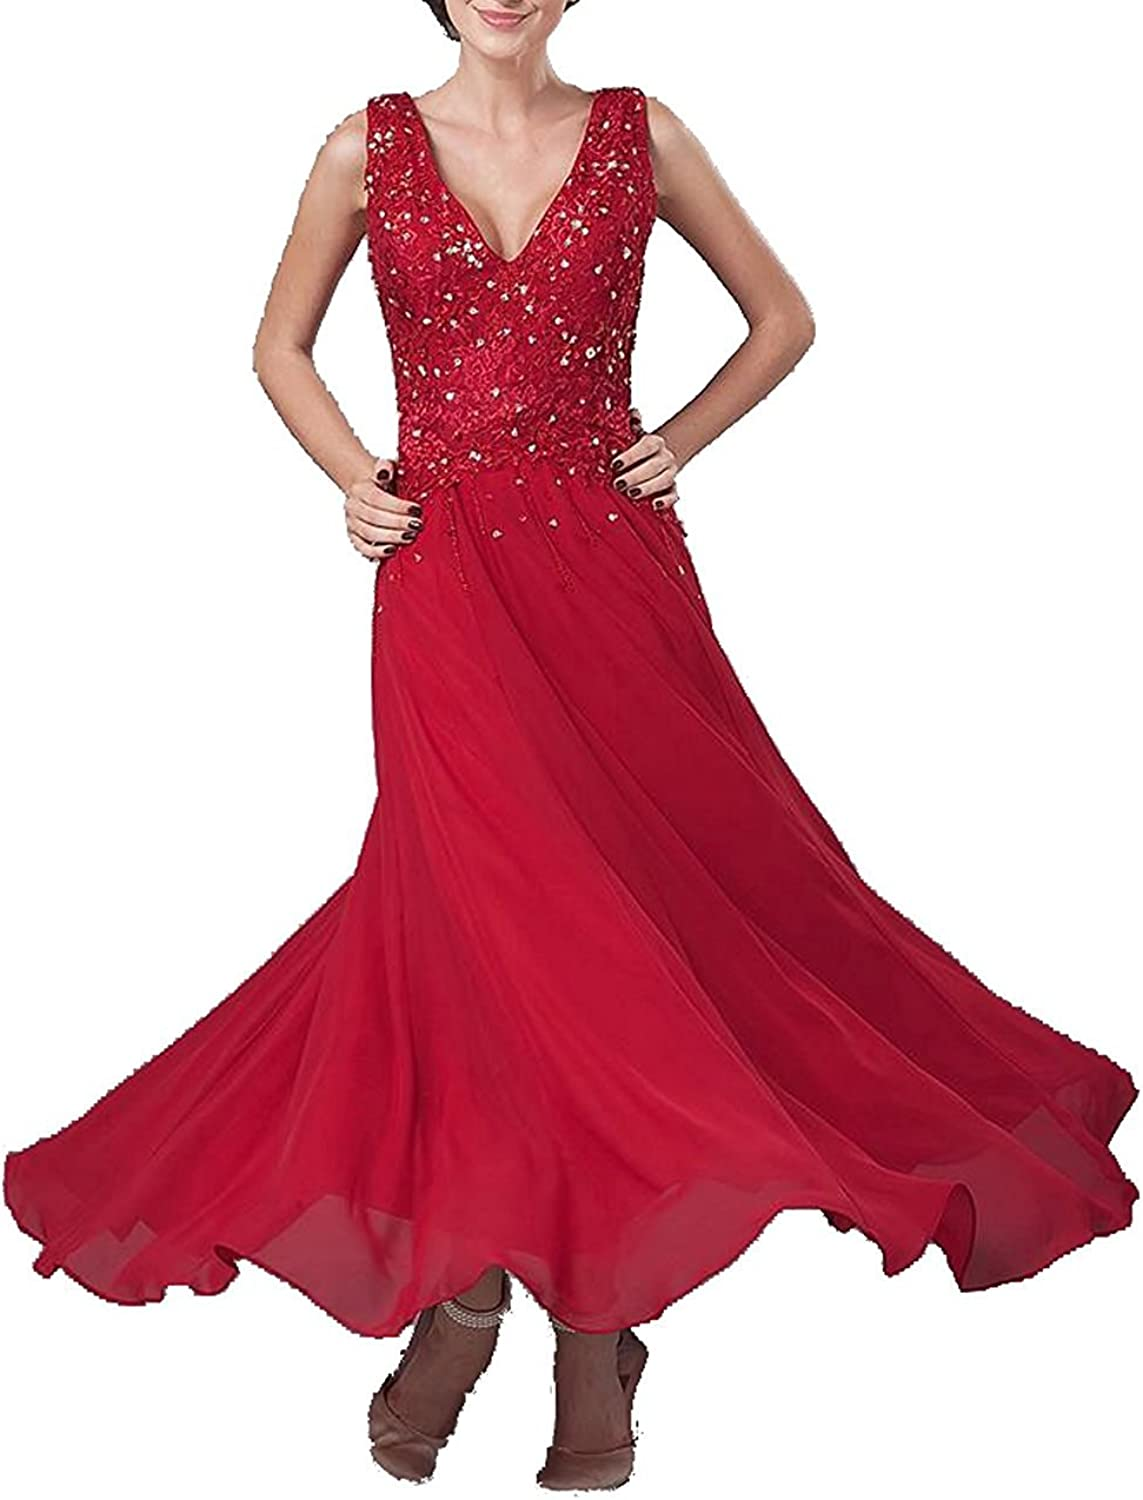 Pretydress Women's Illusion Red Crystal Sleeveless Prom Formal Mother Dress